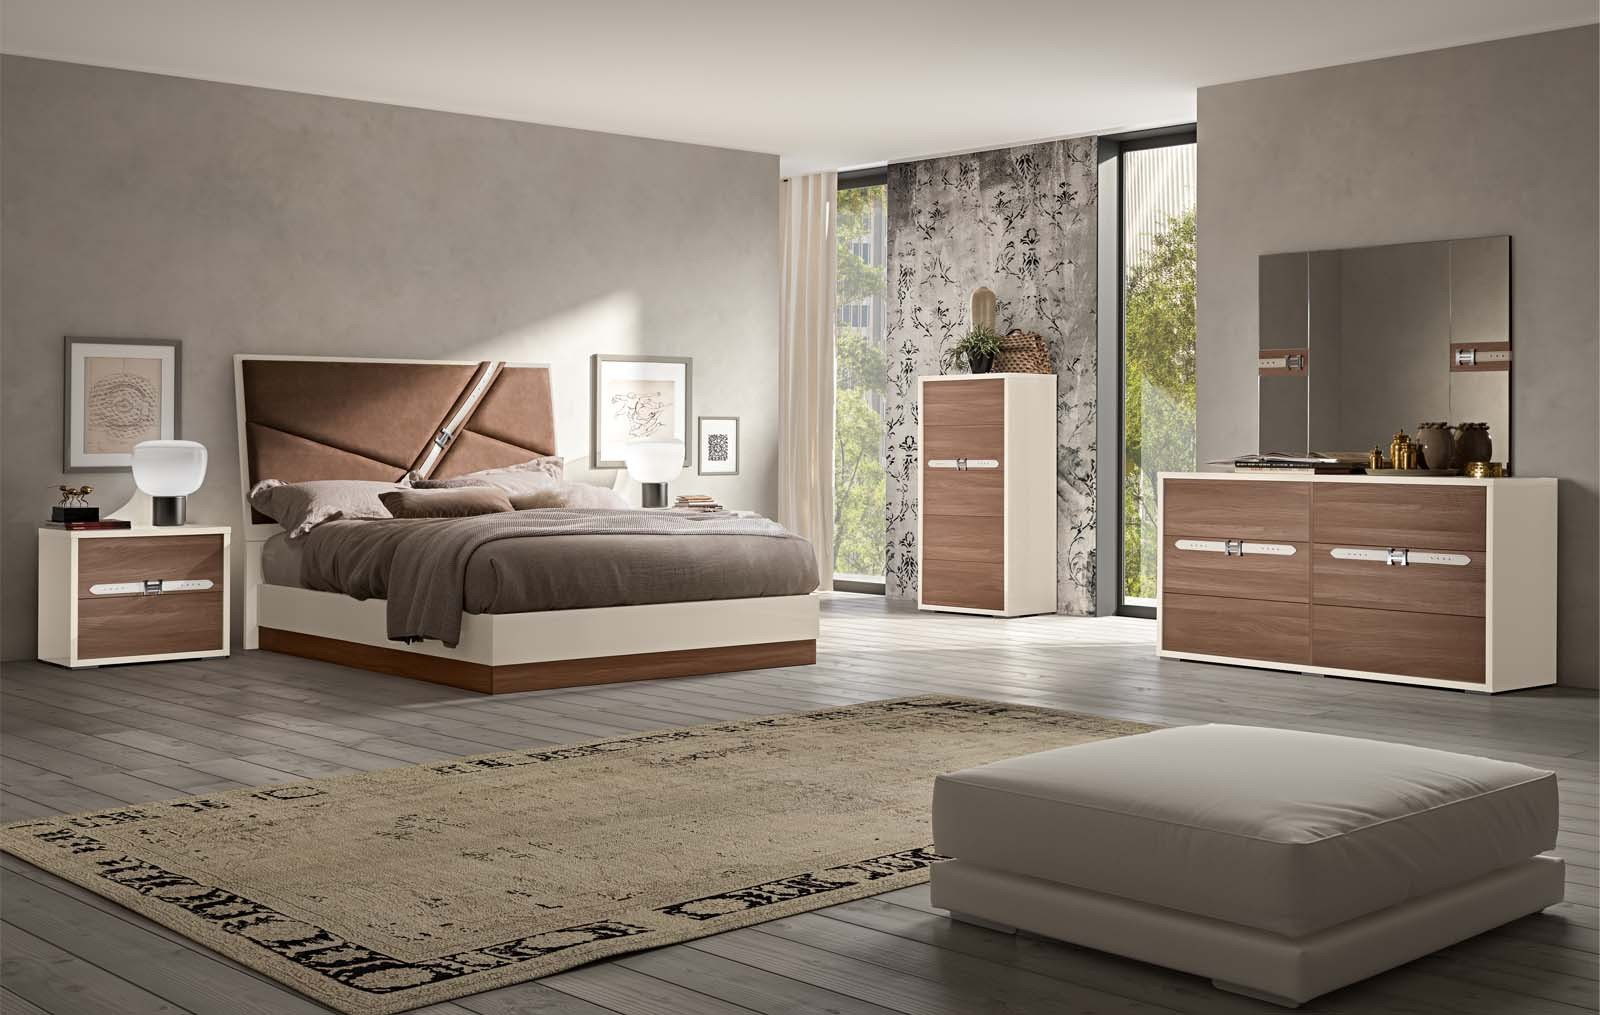 Classic Italian Bedroom Furniture Awesome Evolution Bedroom Modern Bedrooms Bedroom Furniture